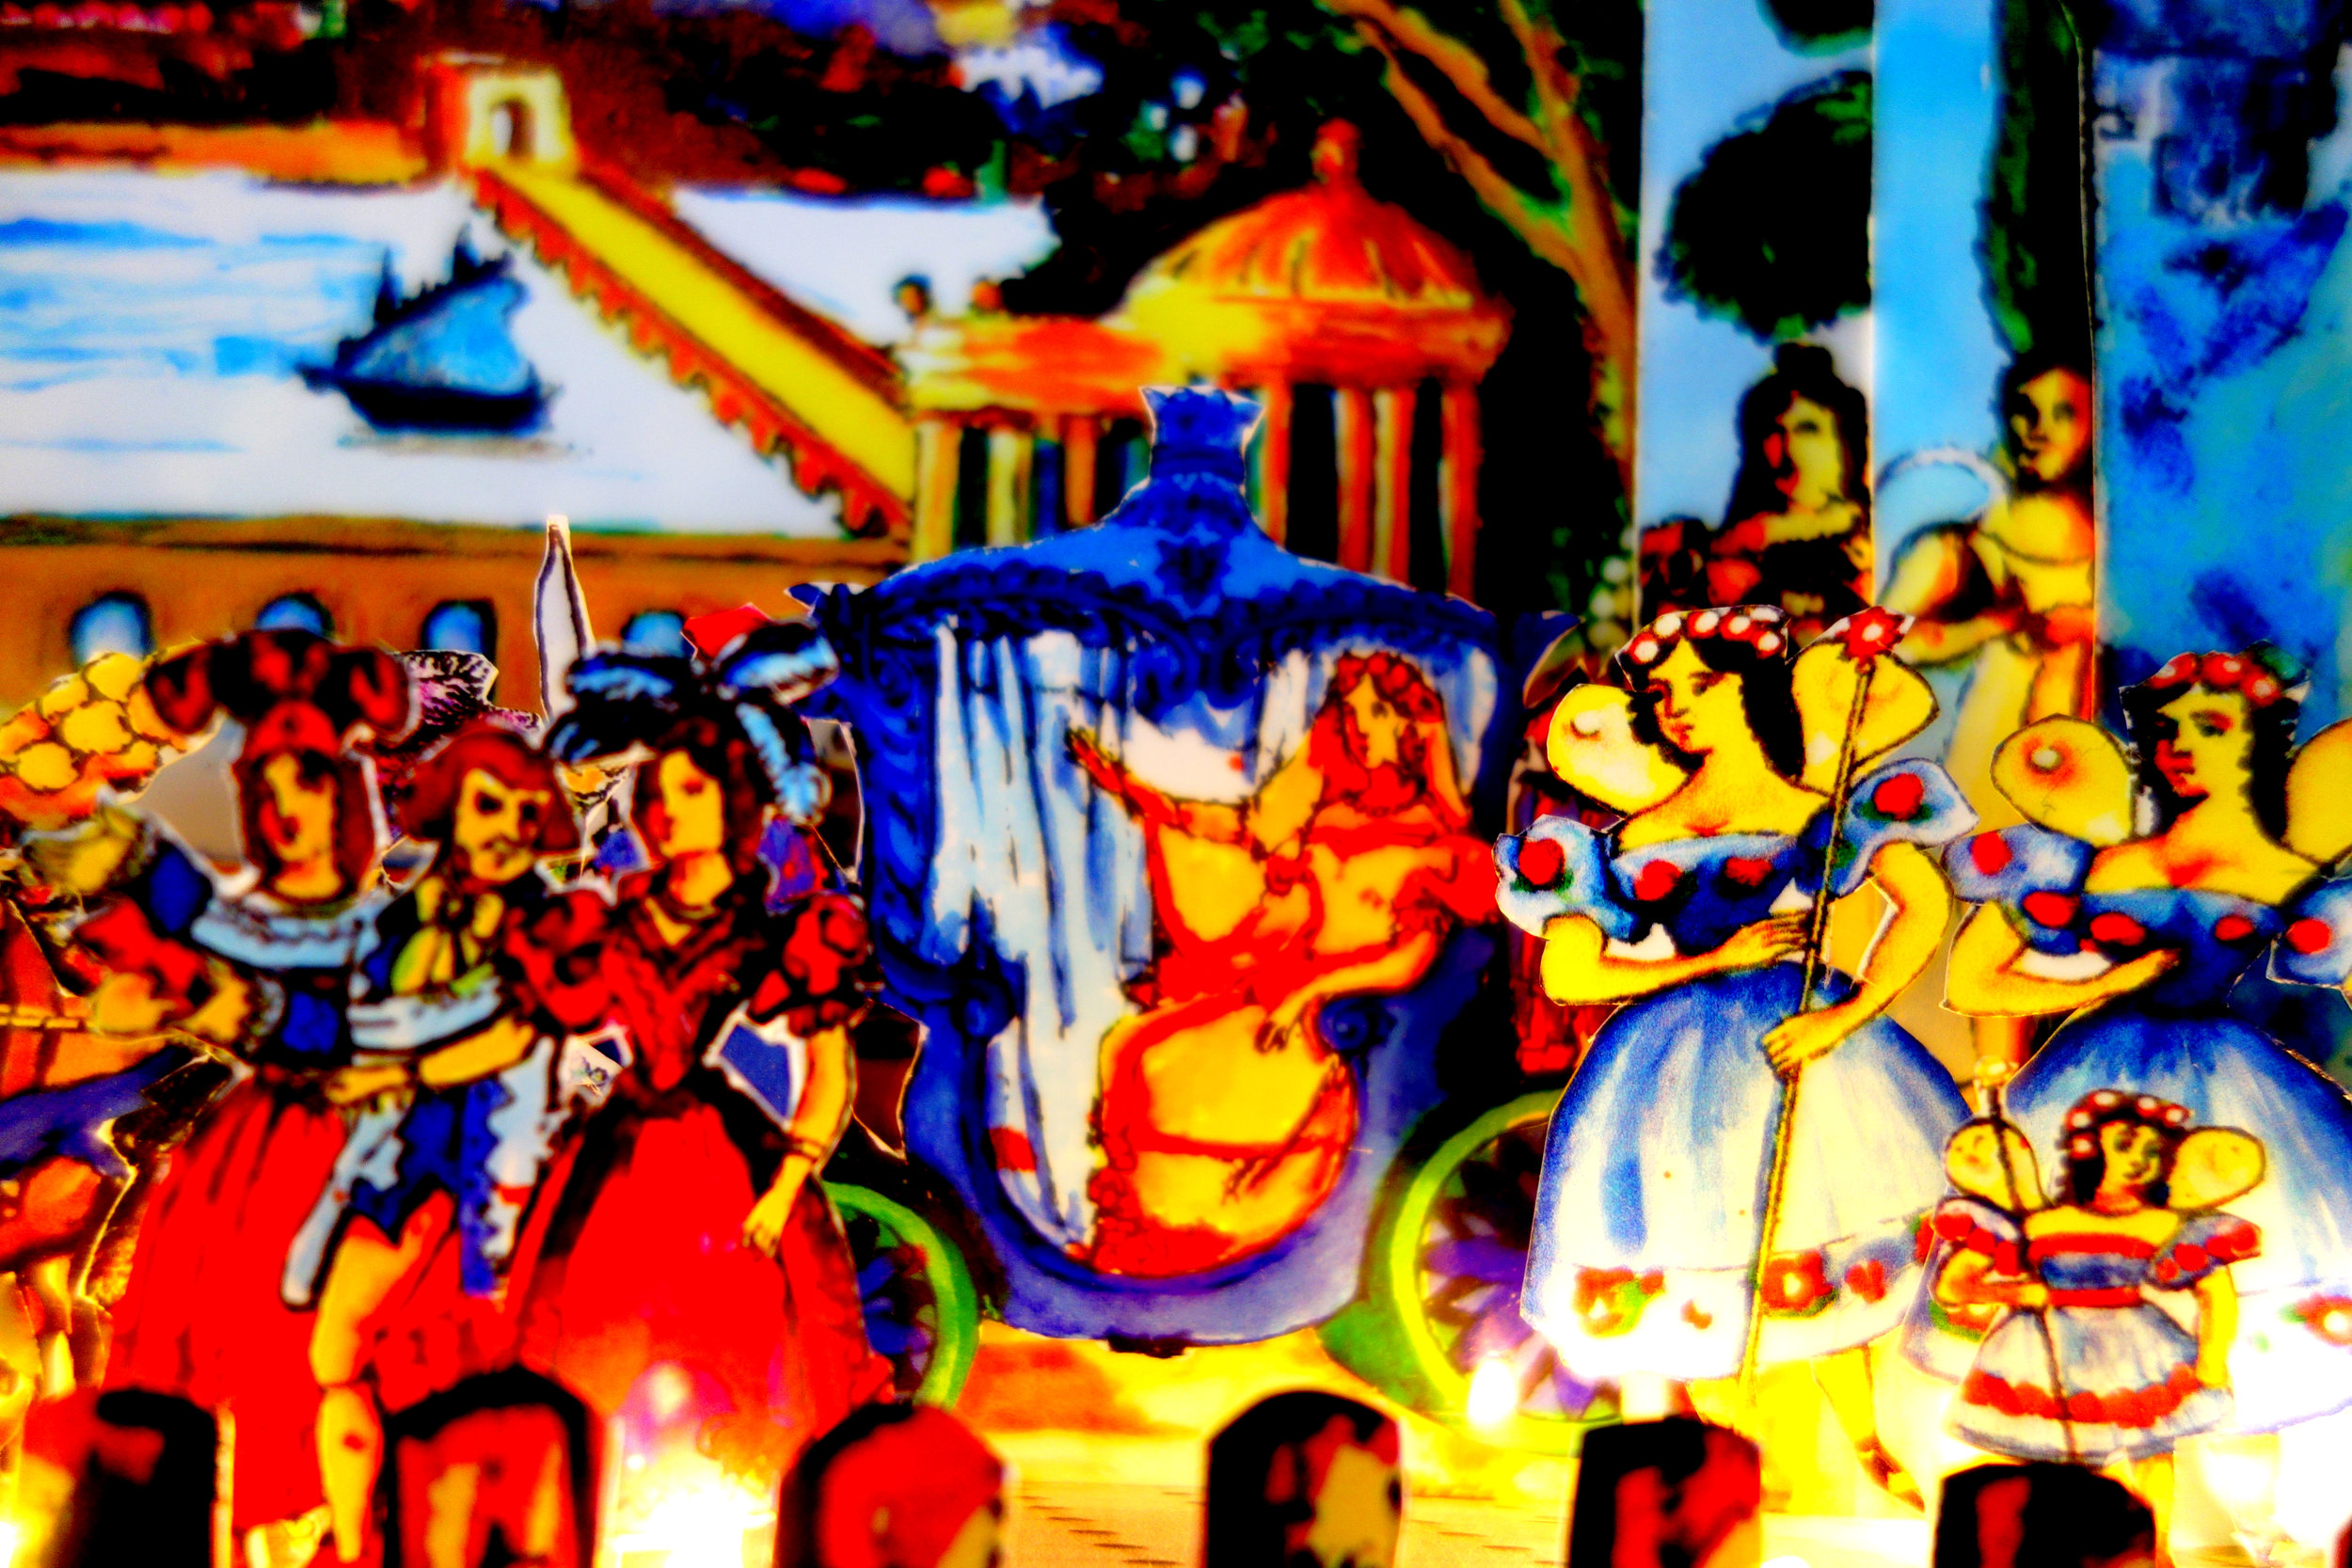 Illuminated Toy Theatres Dioramas - But…. More to follow, Alice's Adventures in Wonderland anybody?